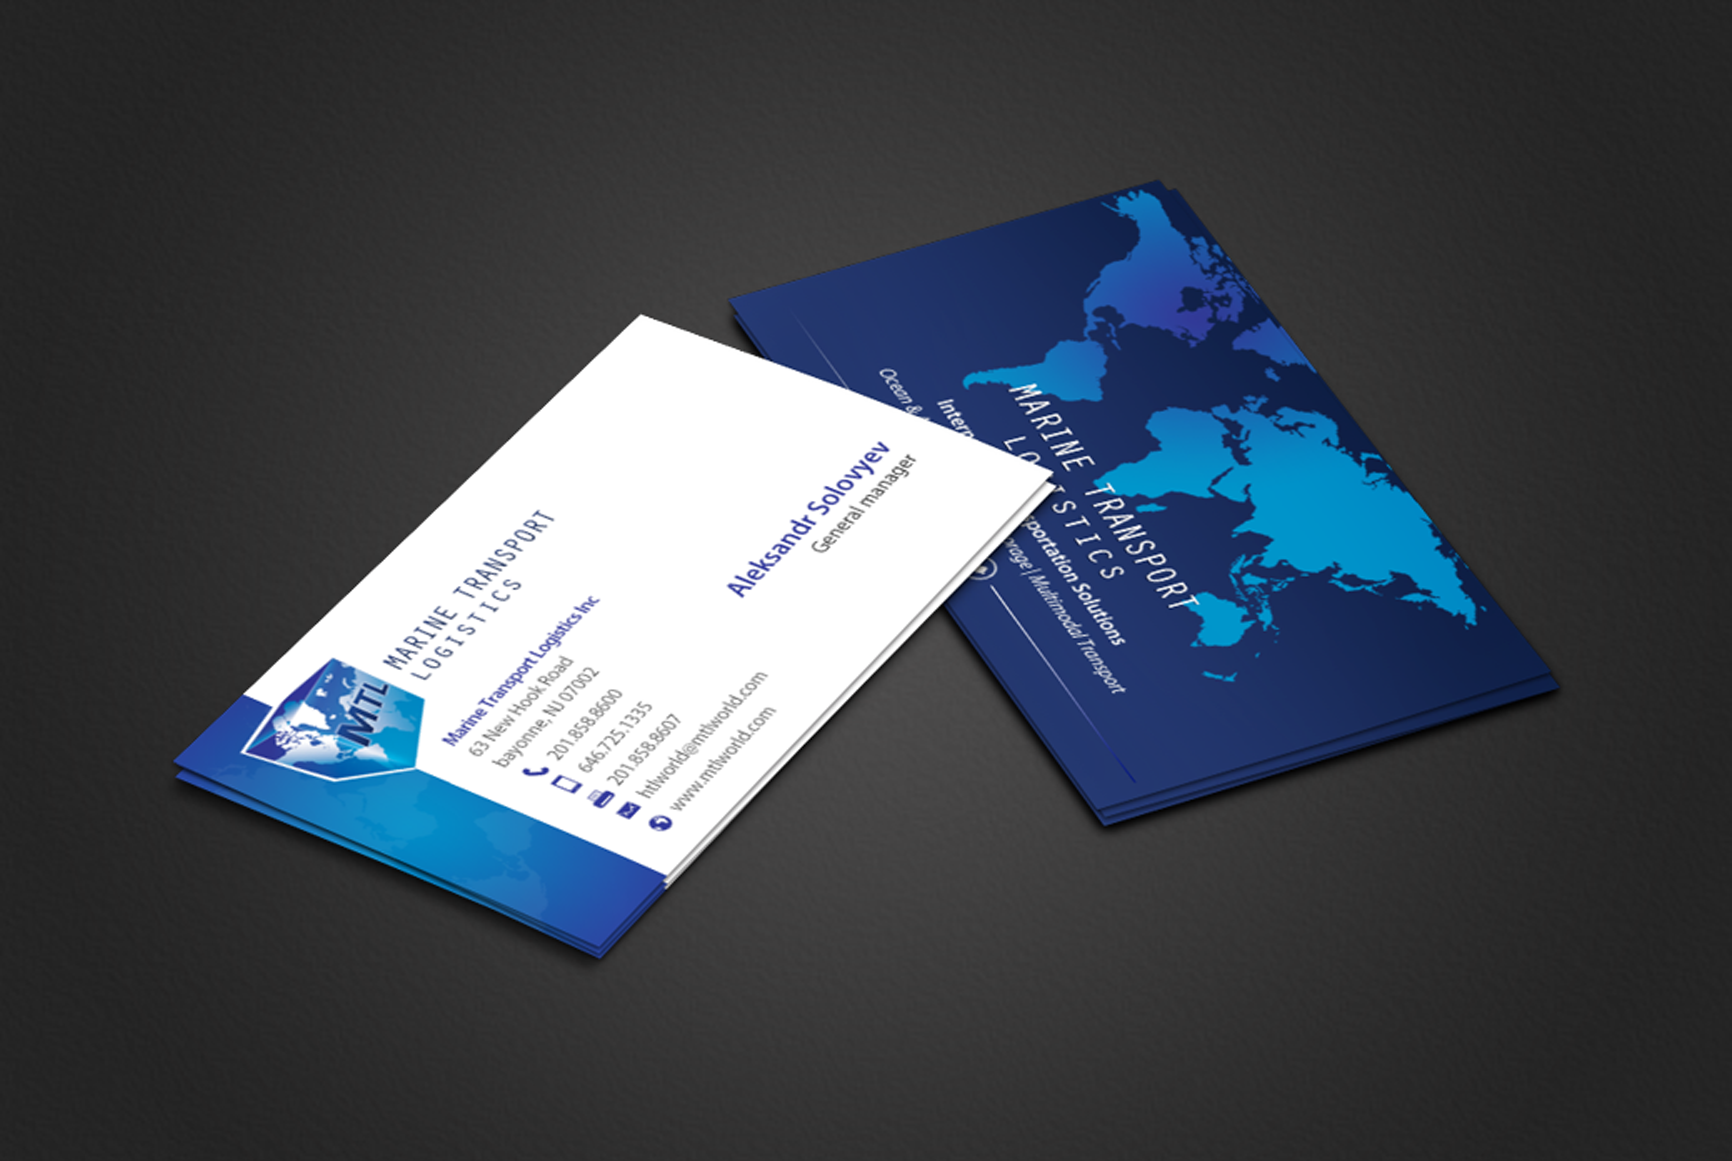 168 elegant business card designs business business card design business card design by chandrayaaneative for micro express consulting design 8460044 reheart Images